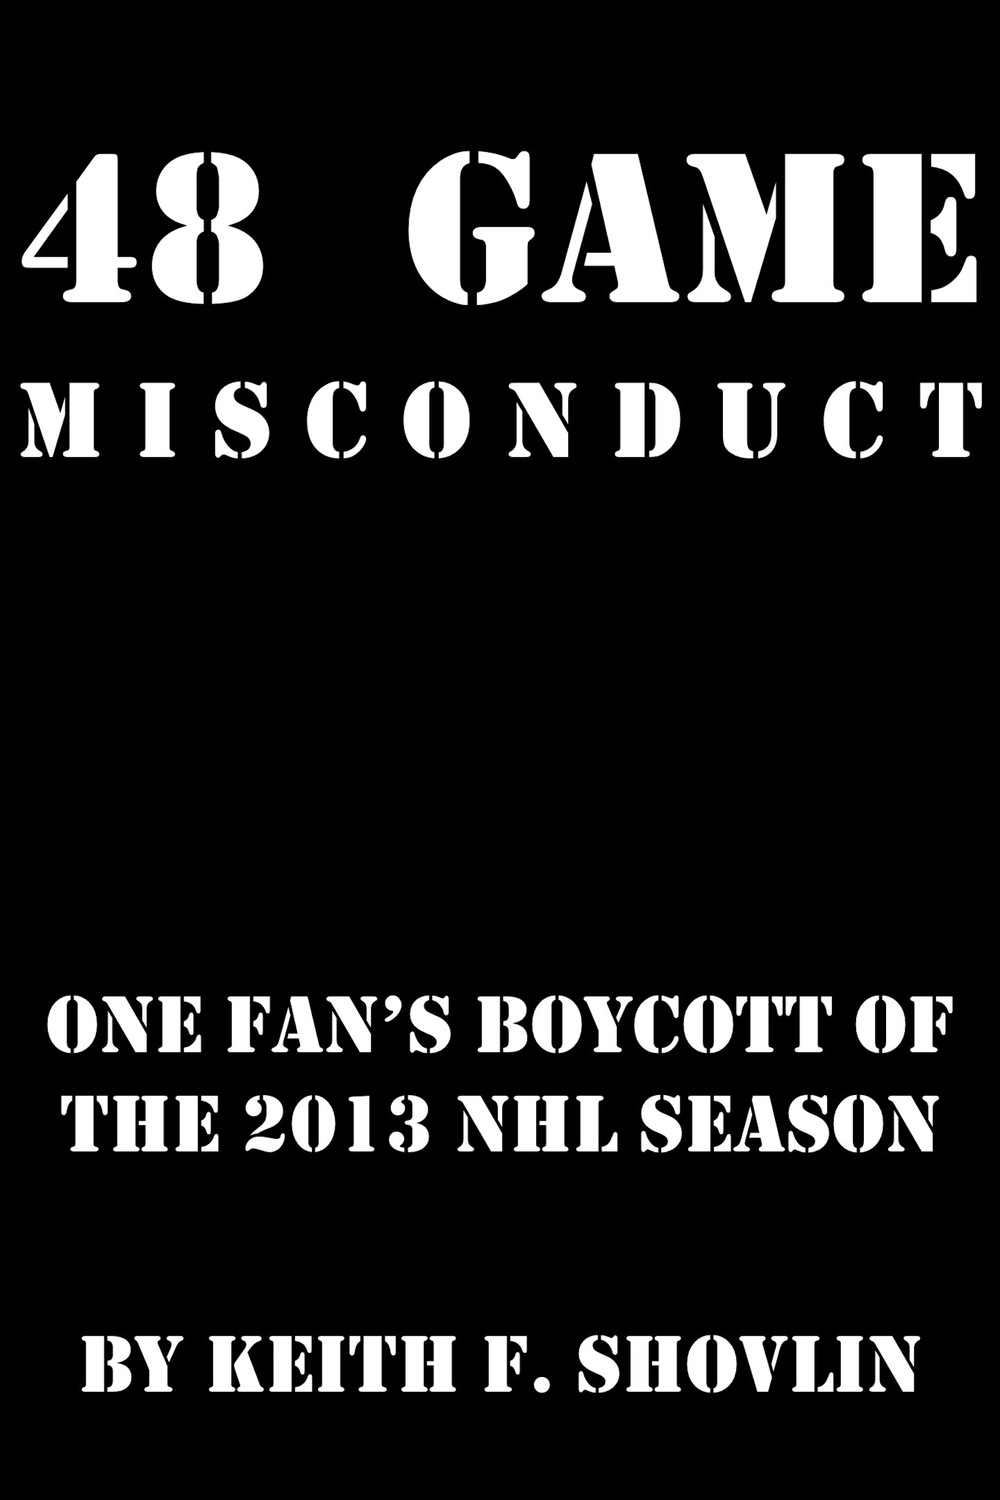 48 Game Misconduct: One Fan's Boycott of the 2013 NHL Season, by Keith F. Shovlin   48gamemisconduct.tumblr.com   978-0-9859044-5-6    Just Drop the Puck!   Goodreads  -  Google Books    free download   Available from:  aois21 market  -  SMASHWORDS  -  KOBOBooks  -  Barnes & Noble  -    GooglePlay  -  iBookstore